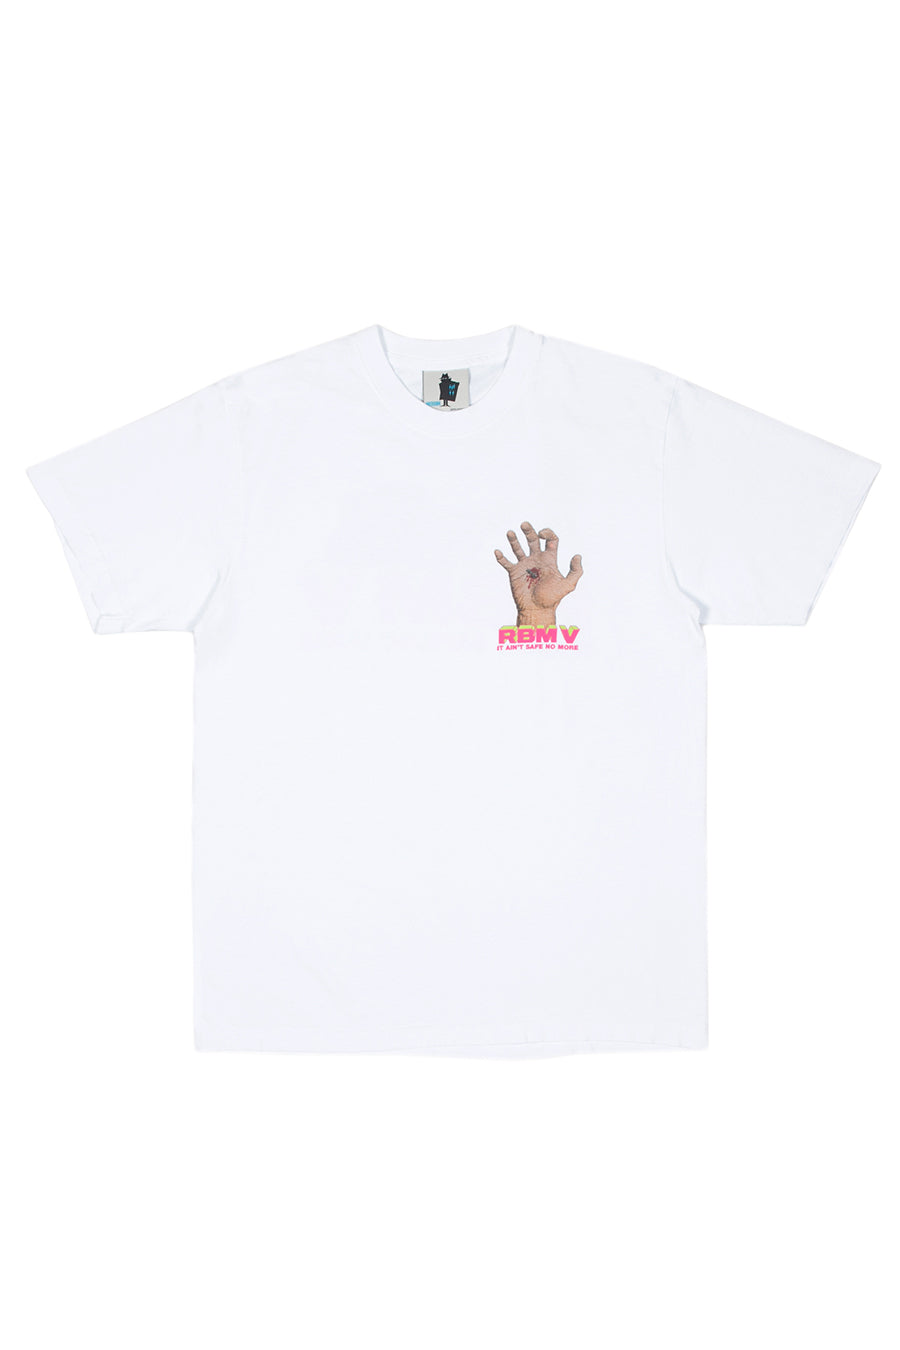 Real Bad Man - White RBM V T-Shirt